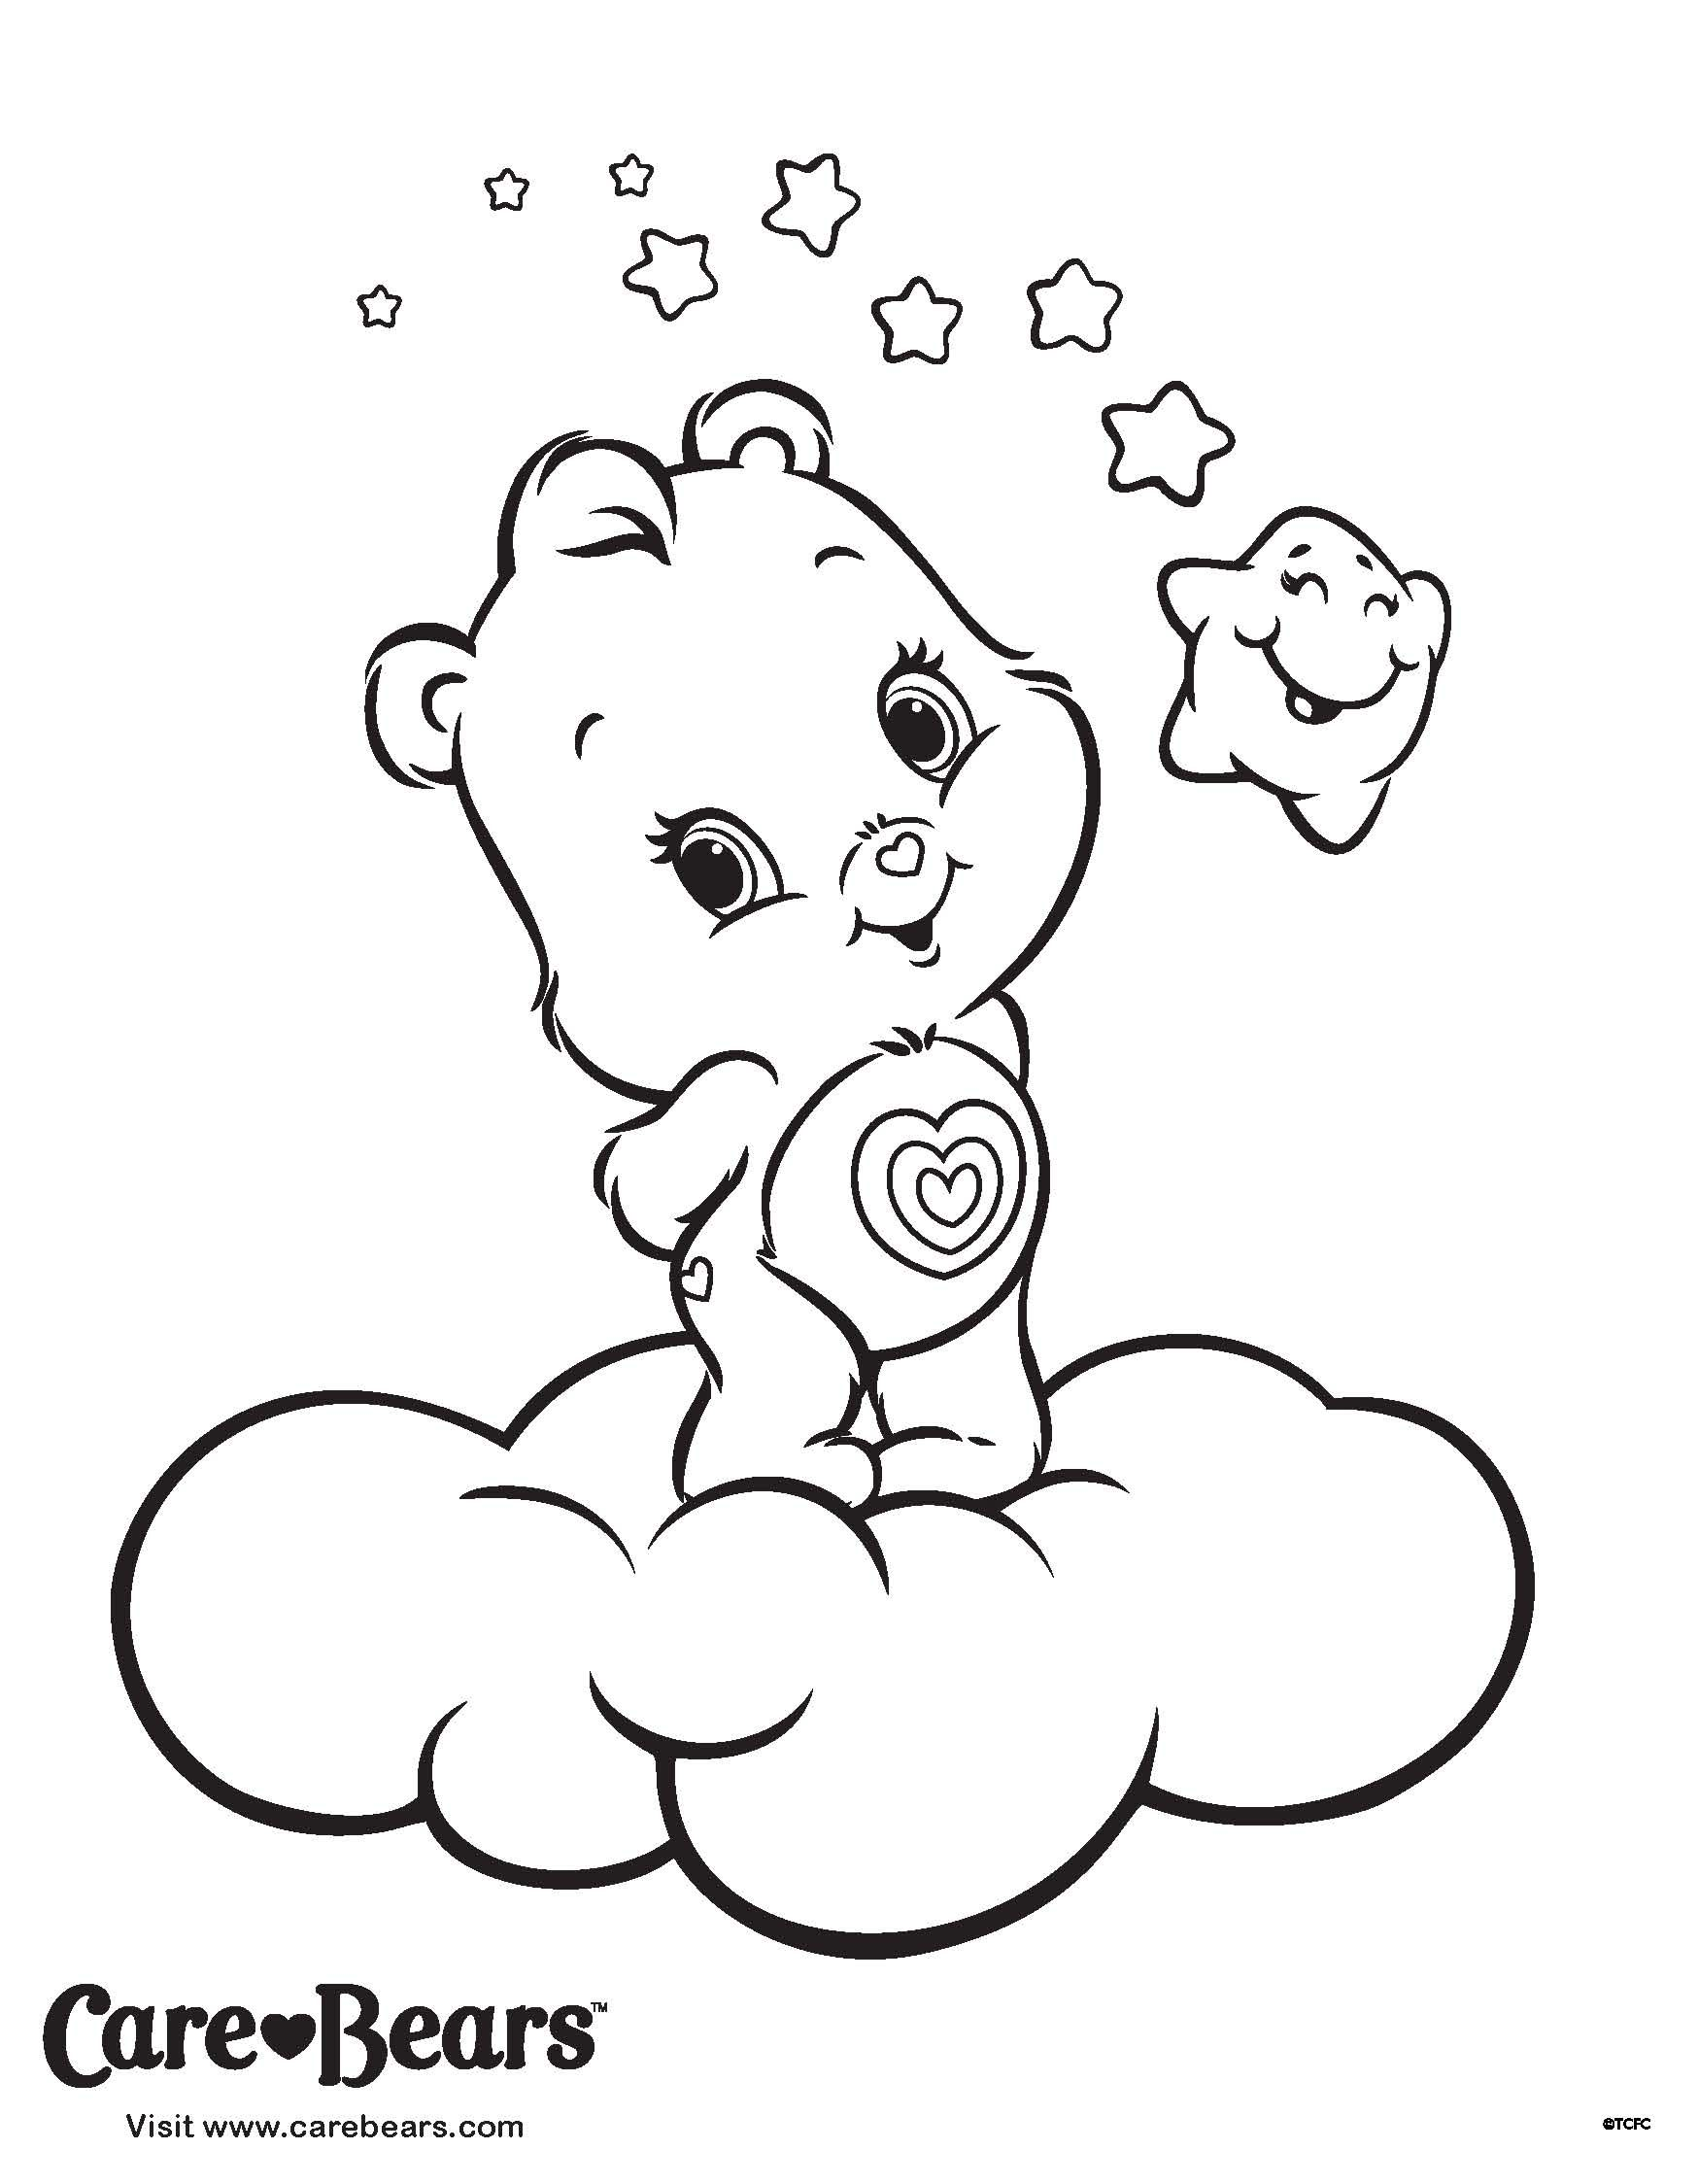 Care Bears Coloring Pages Bing